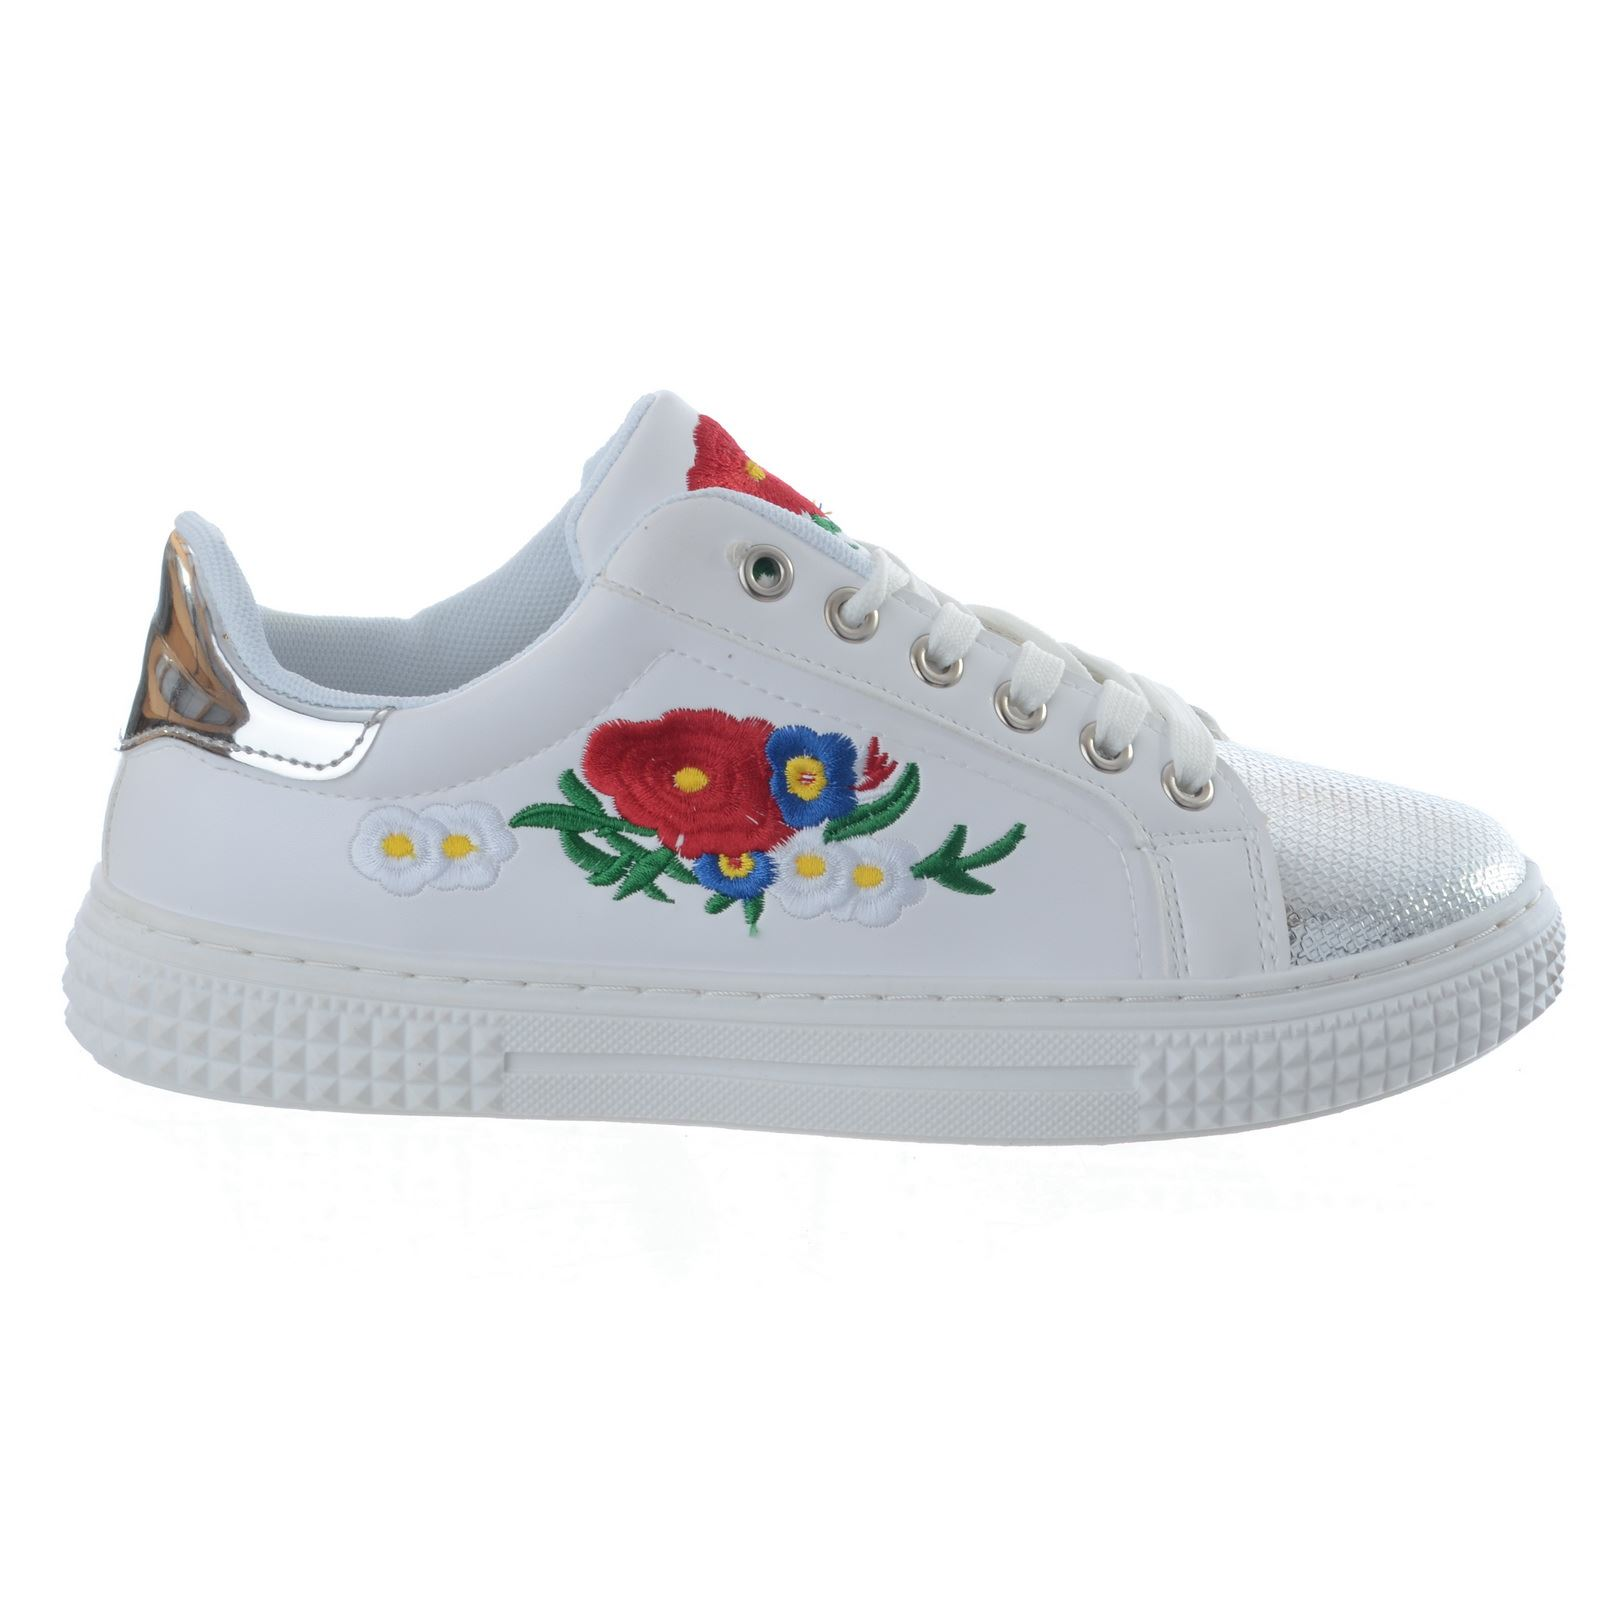 17cffc3d68e LADIES WOMENS FLOWER EMBROIDERED LACE UP FLAT PLATFORM TRAINERS ...